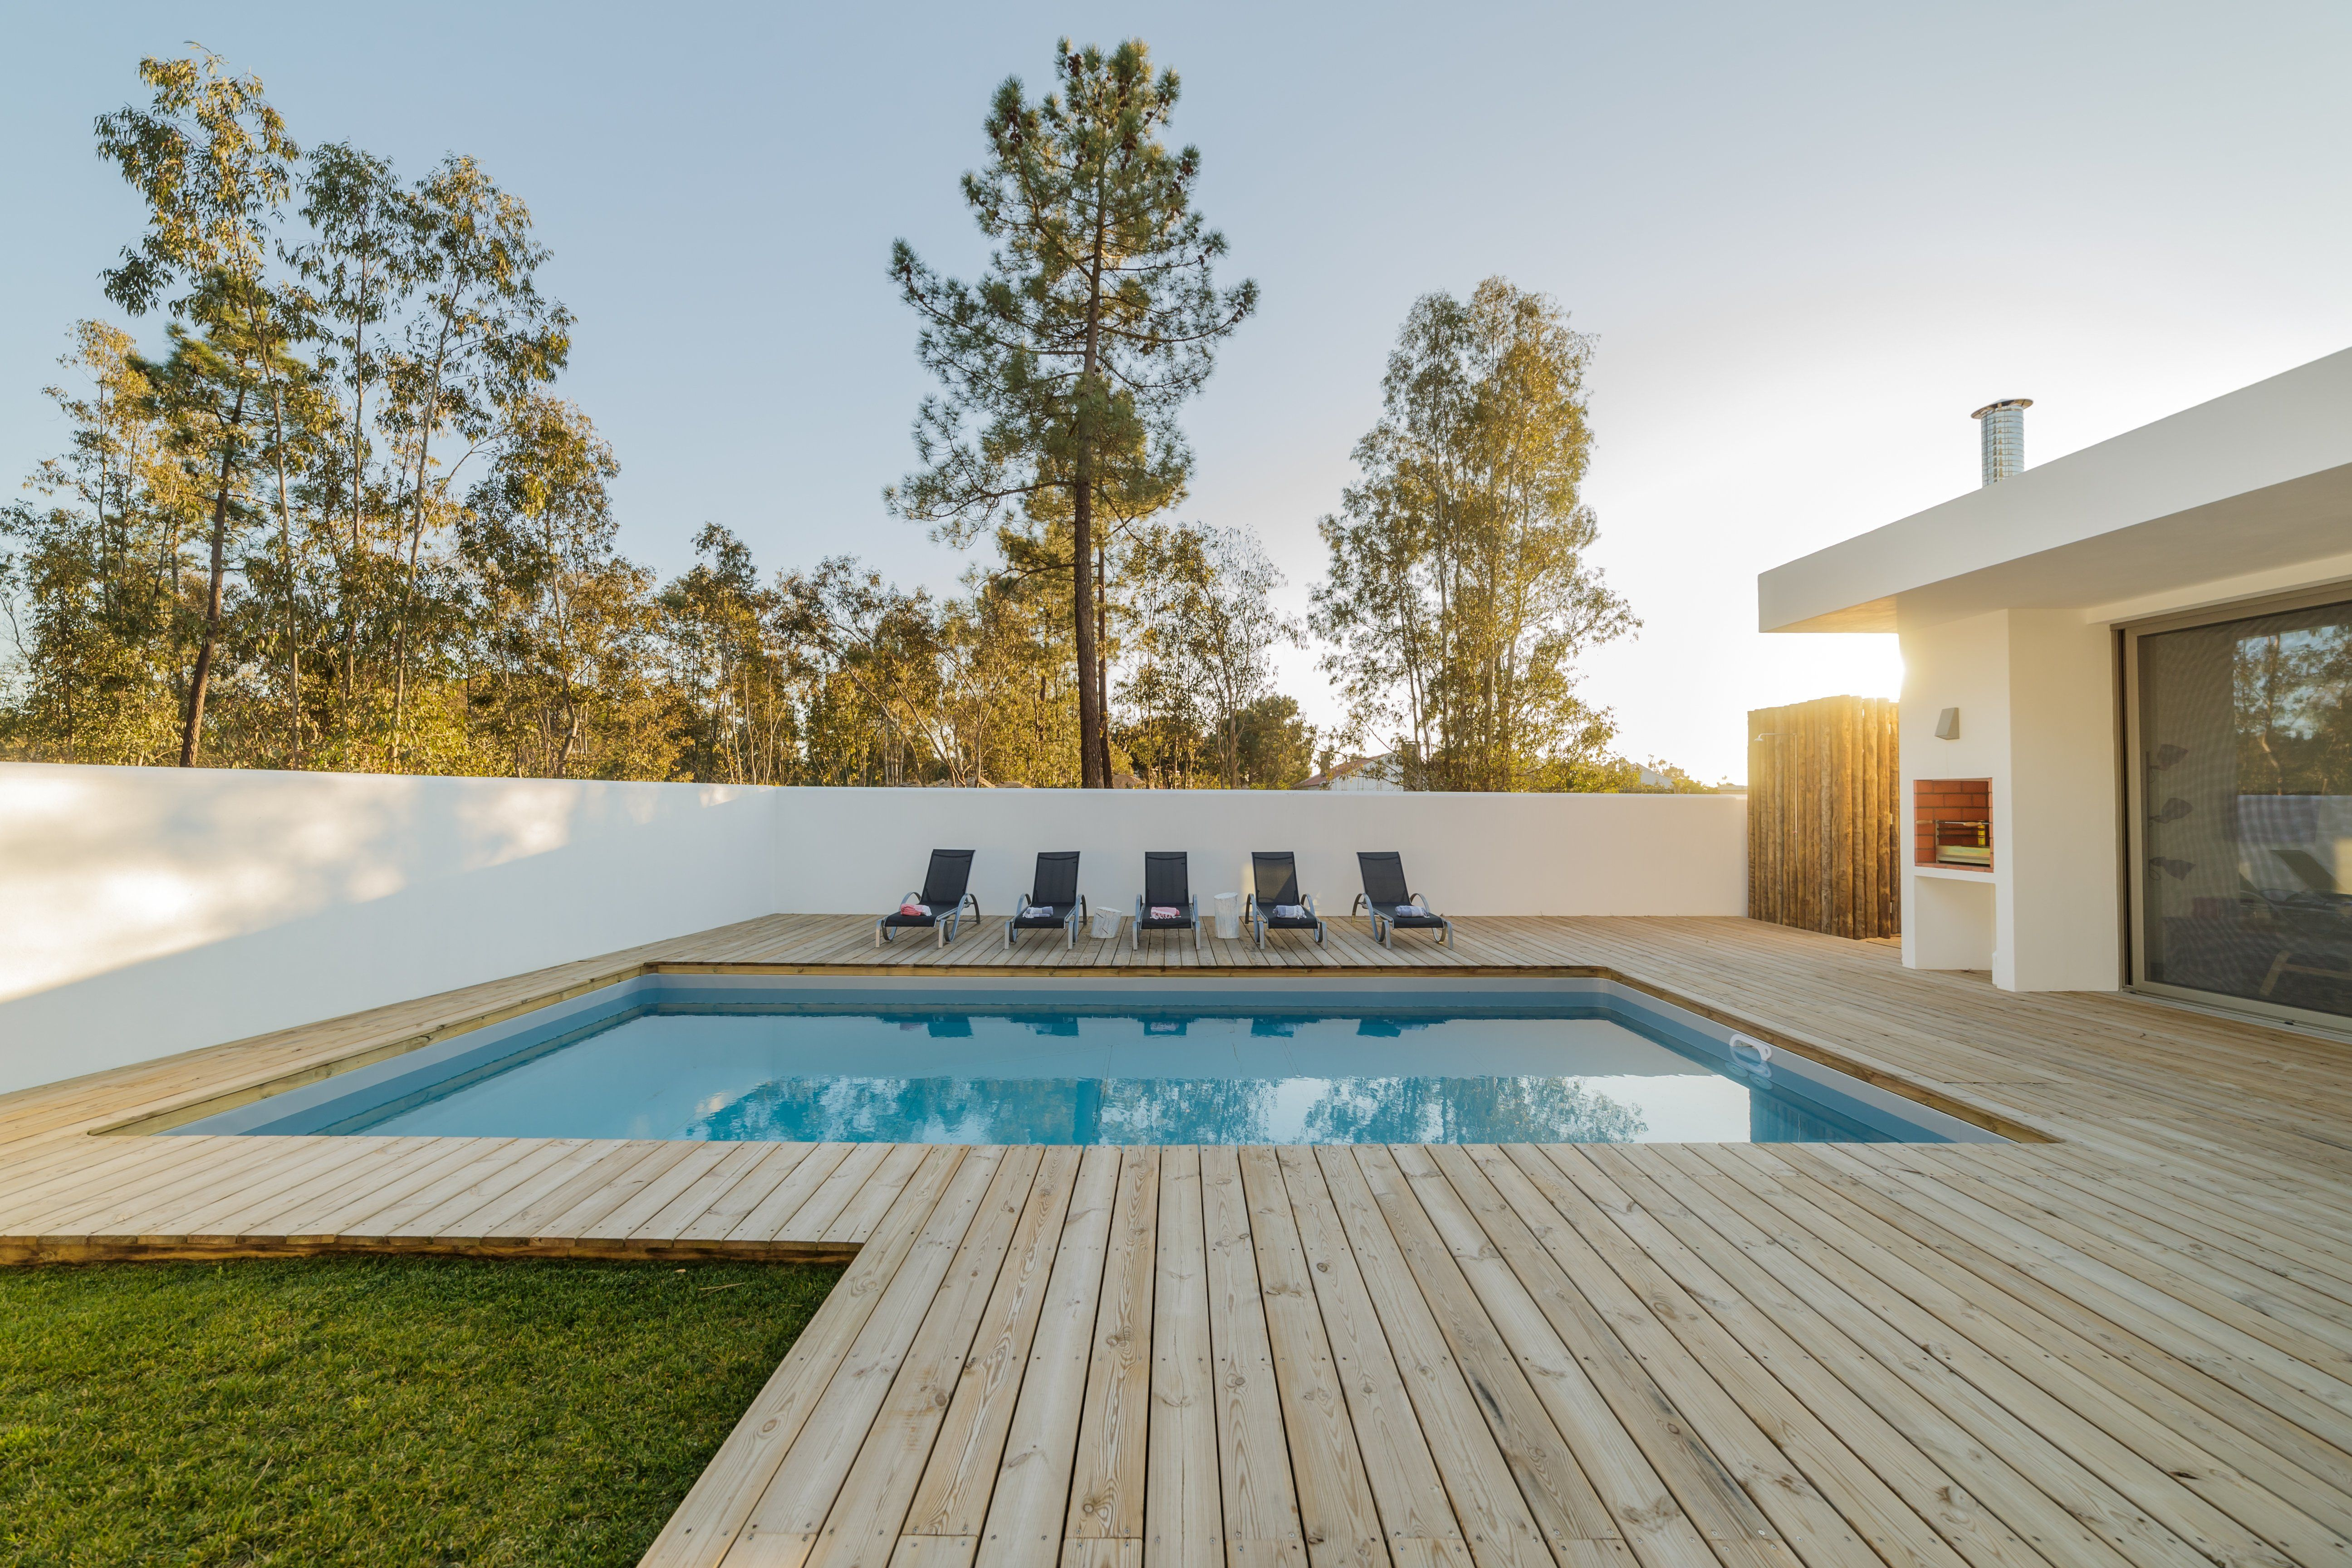 Wooden Decks For Inground Swimming Pools Cost Types And More Decks Around Pools Wood Pool Deck Wooden Pool Deck